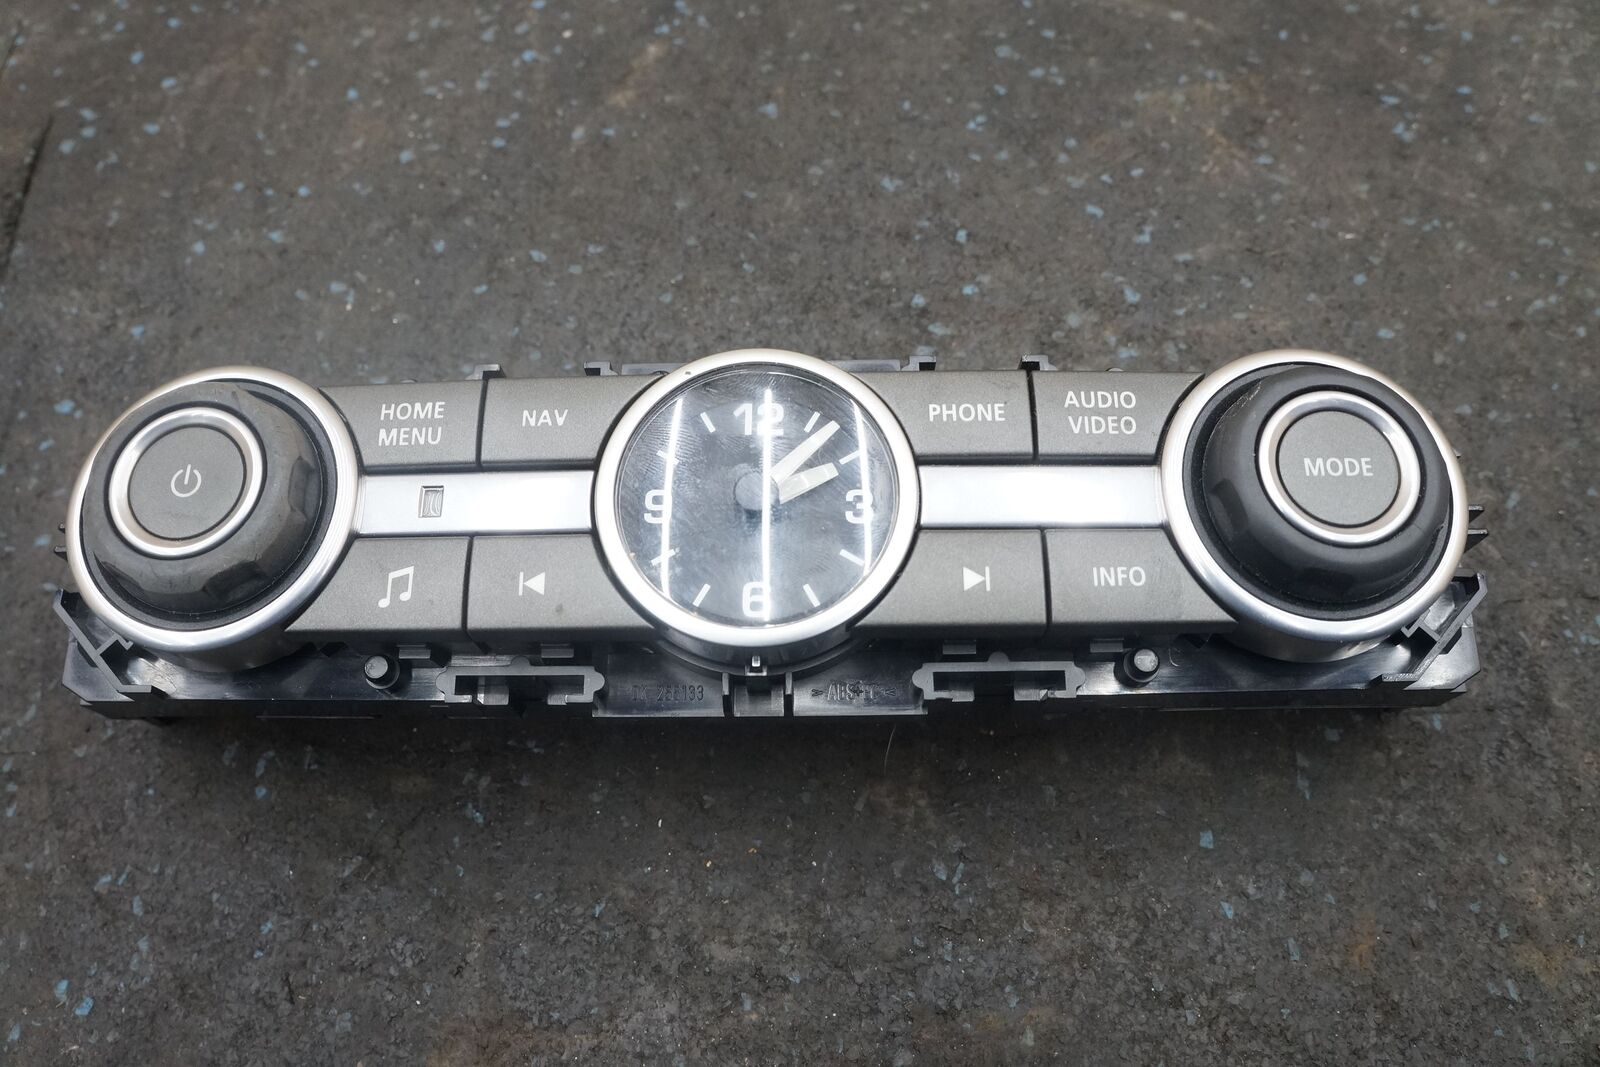 hight resolution of dash radio control switch panel clock lr029583 land rover